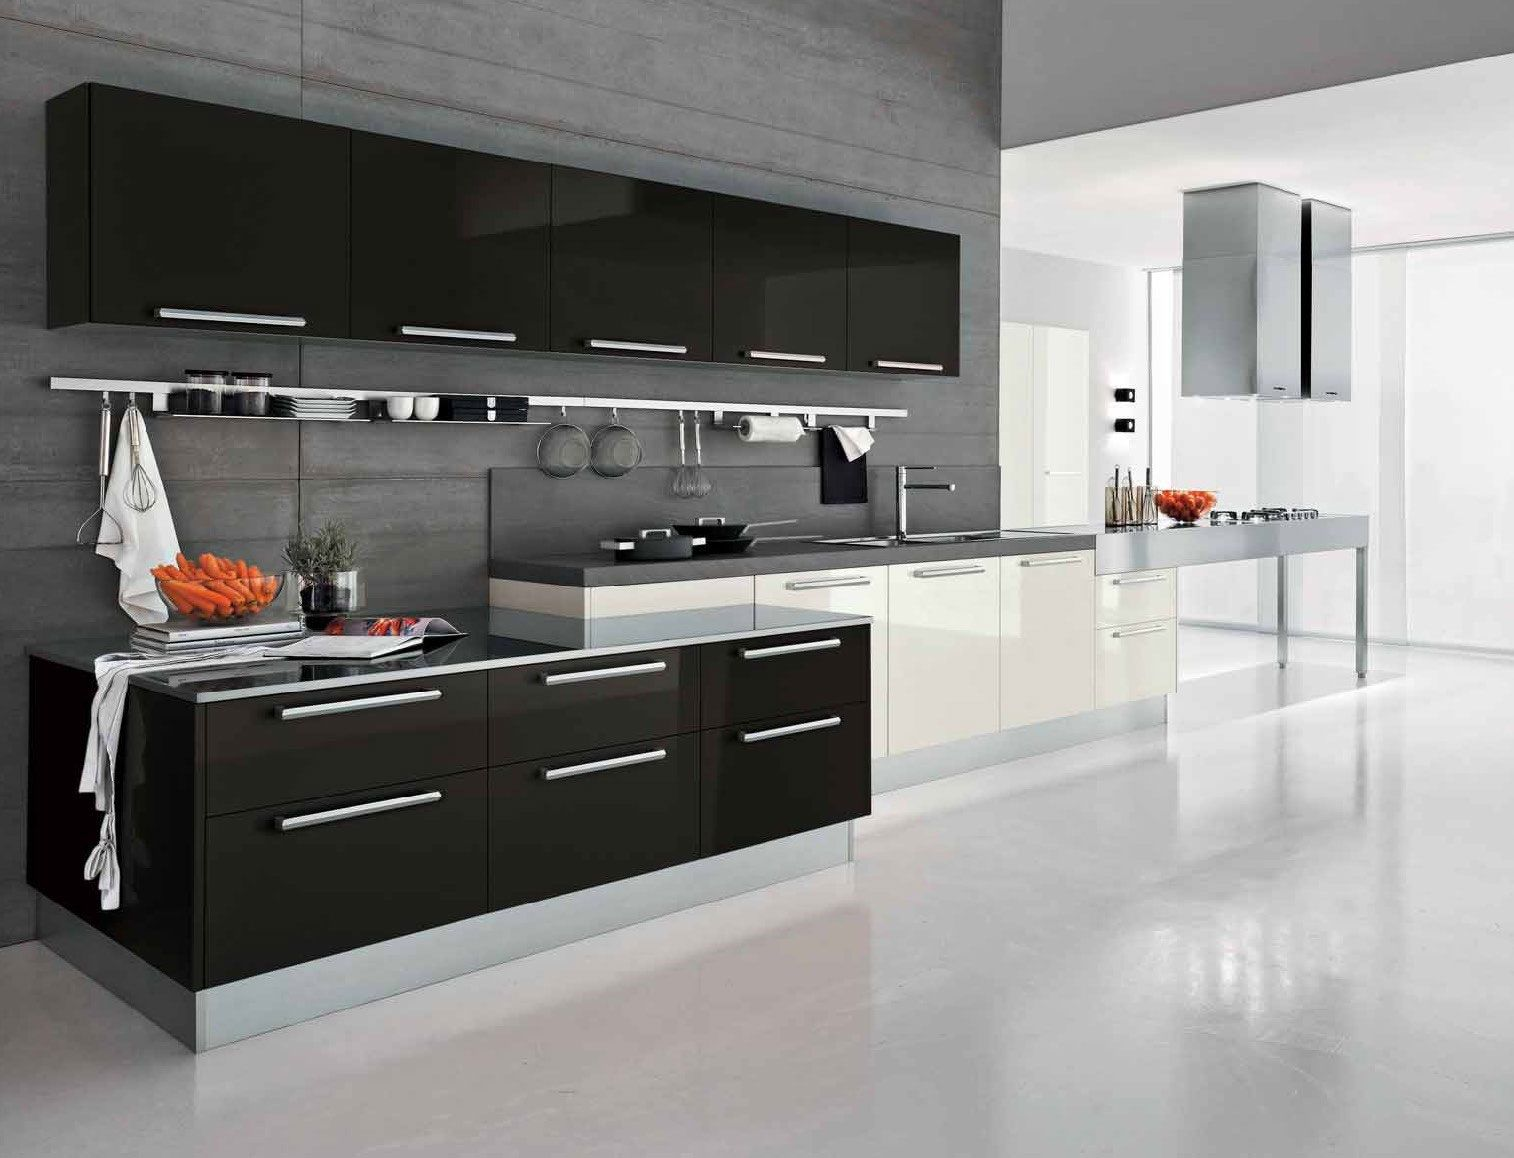 Fabulous Black And White Kitchen Color With Modern Cabinets In Sleek Design Completed Sink